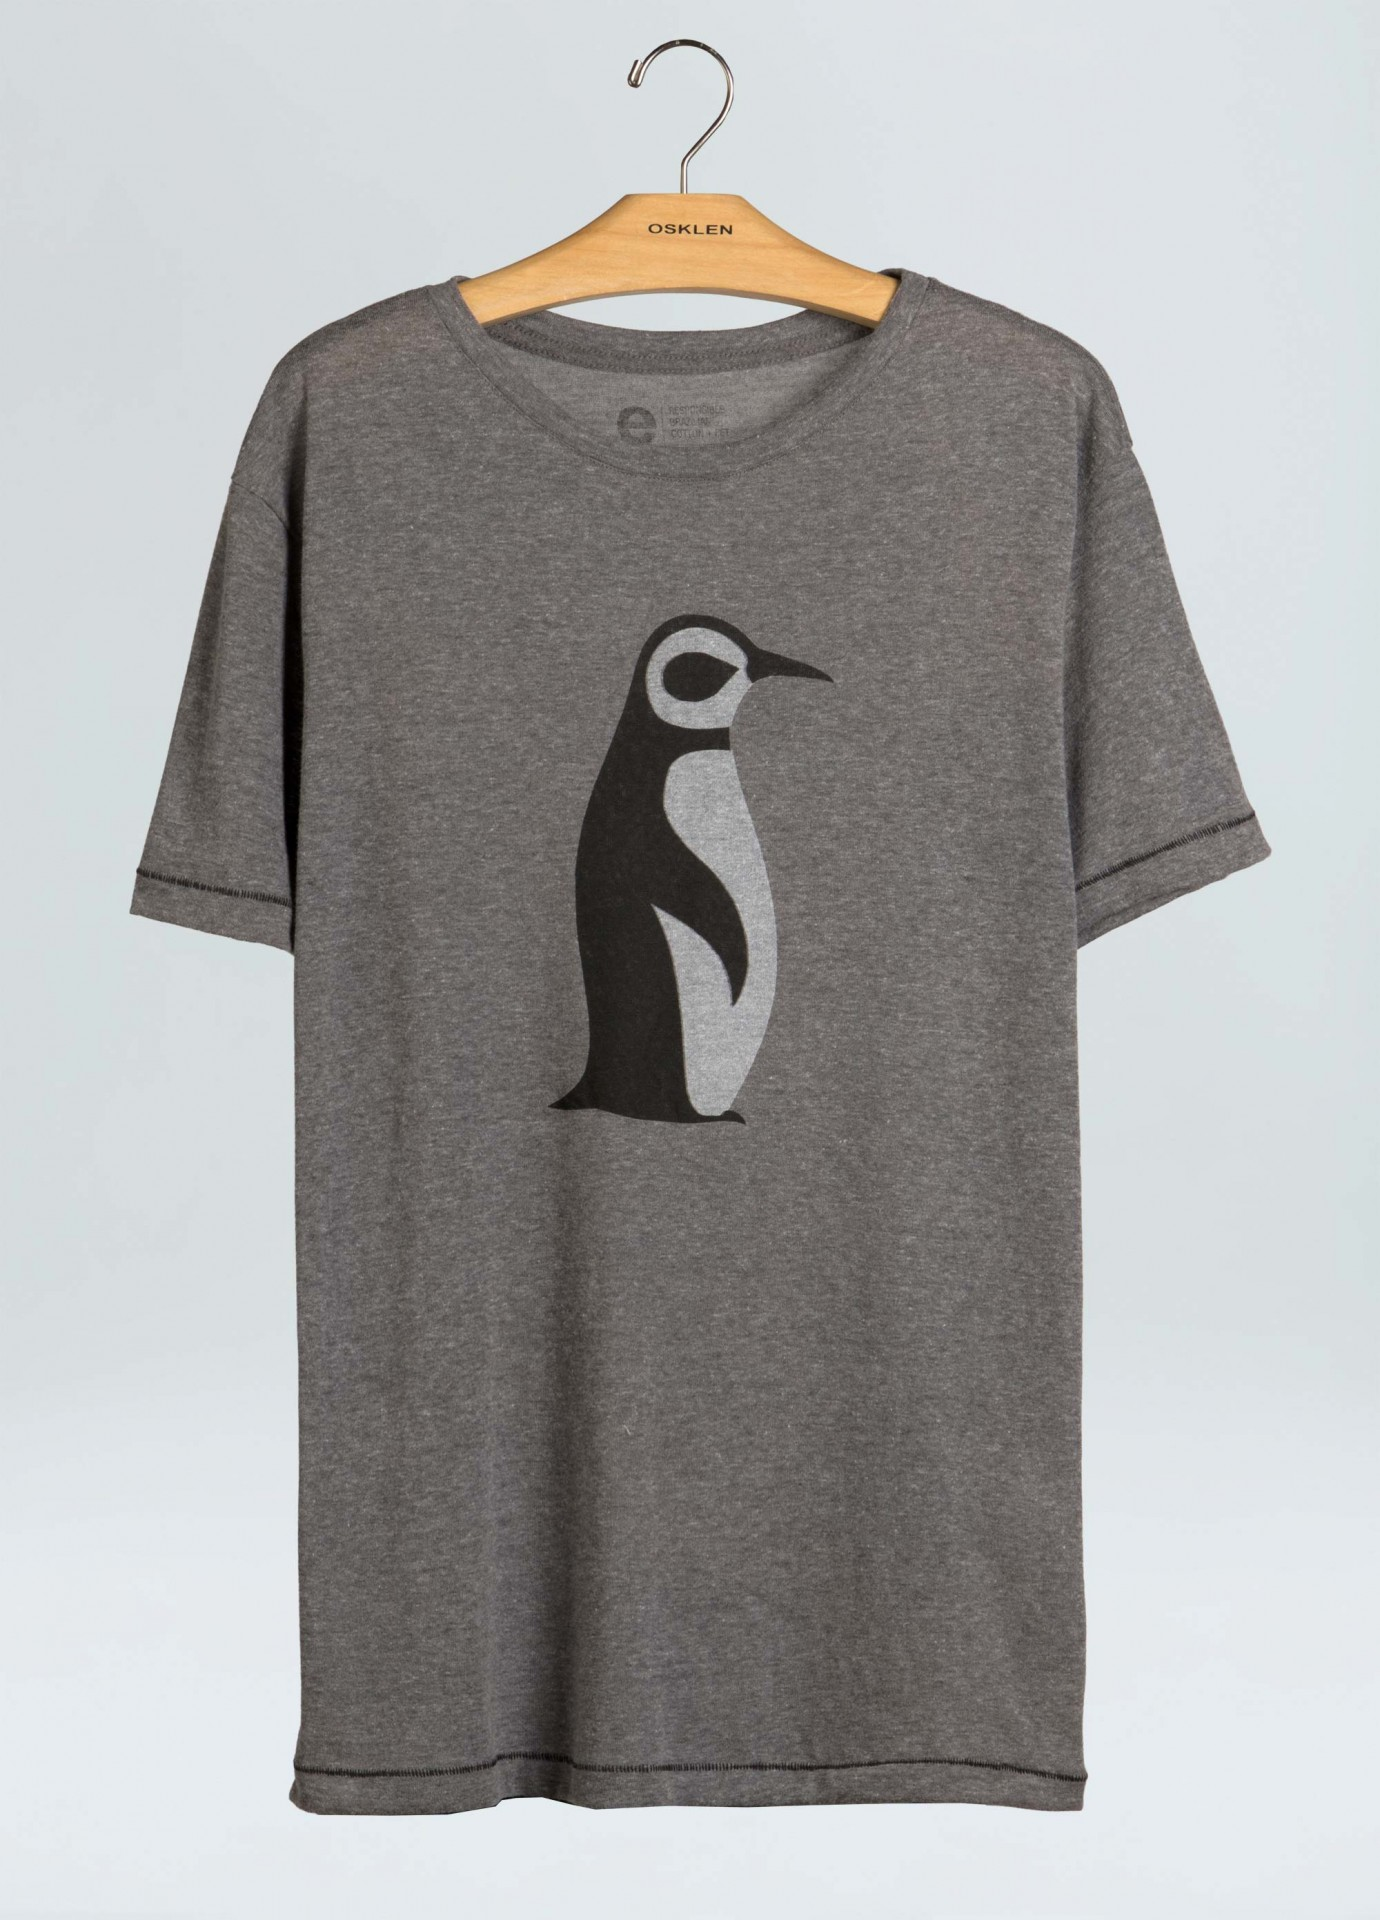 T-Shirt Osklen Light Eco Pinguim